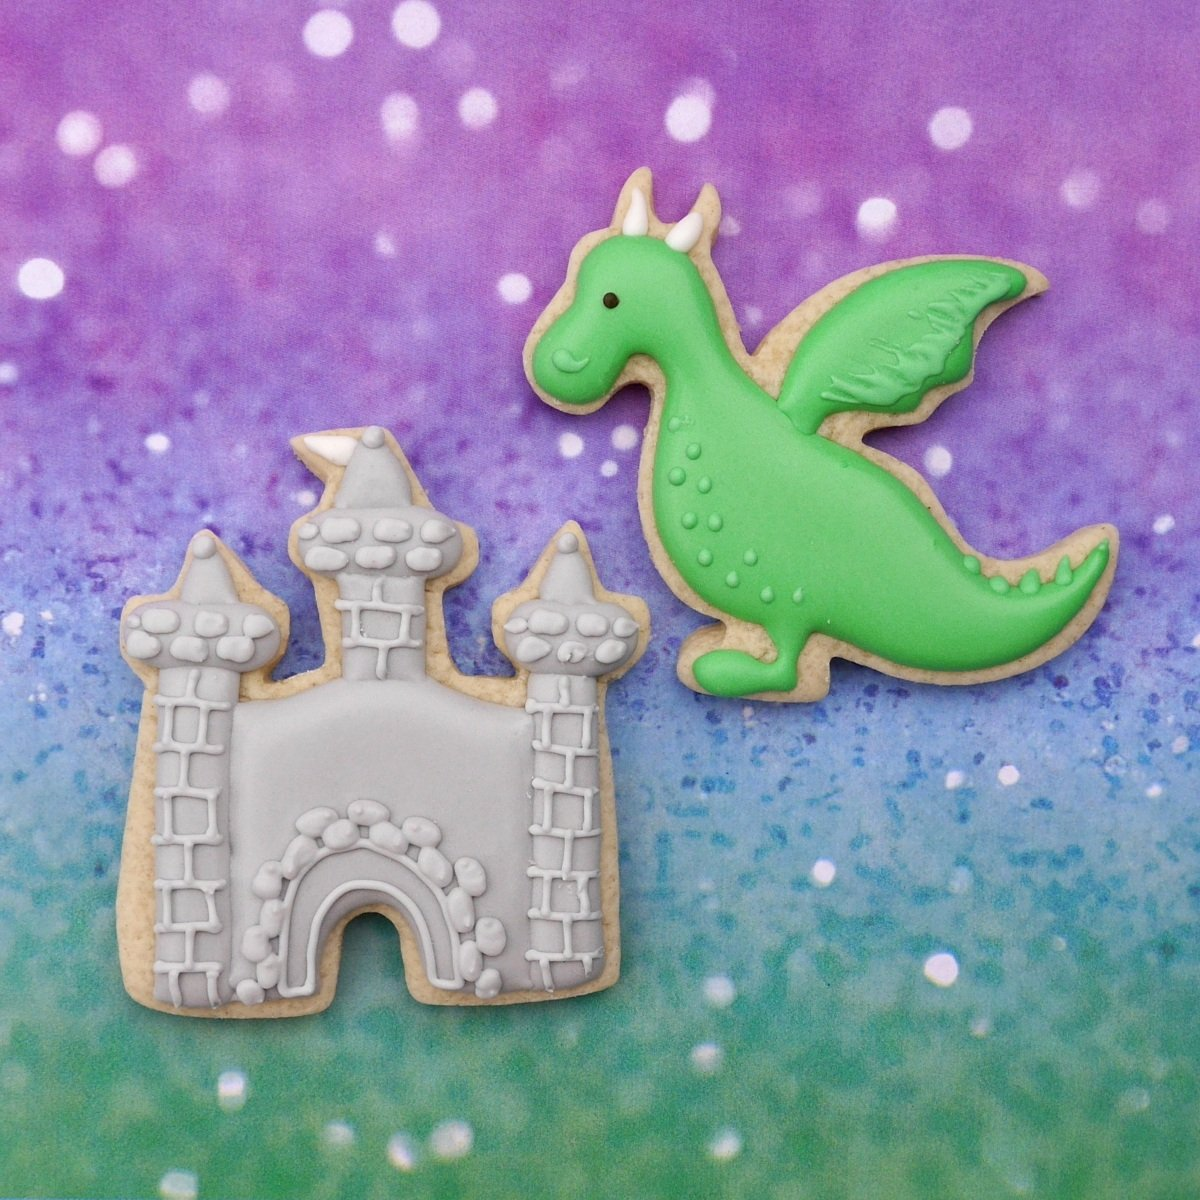 Princess Kingdom Cookie Cutter Set - 10 Piece Stainless Steel by Sweet Cookie Crumbs (Image #5)